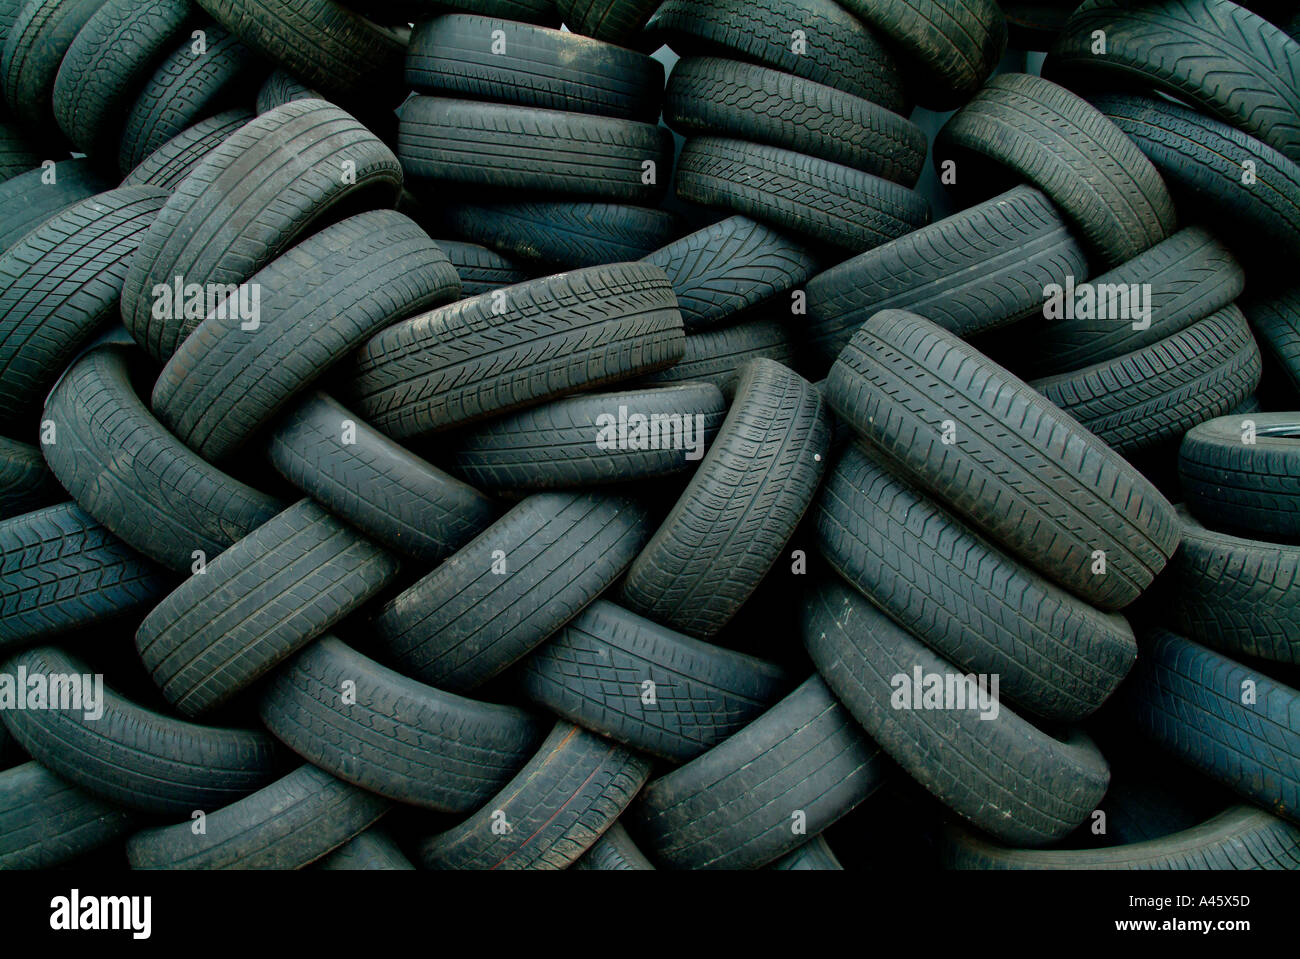 Pile of old car tyres - Stock Image